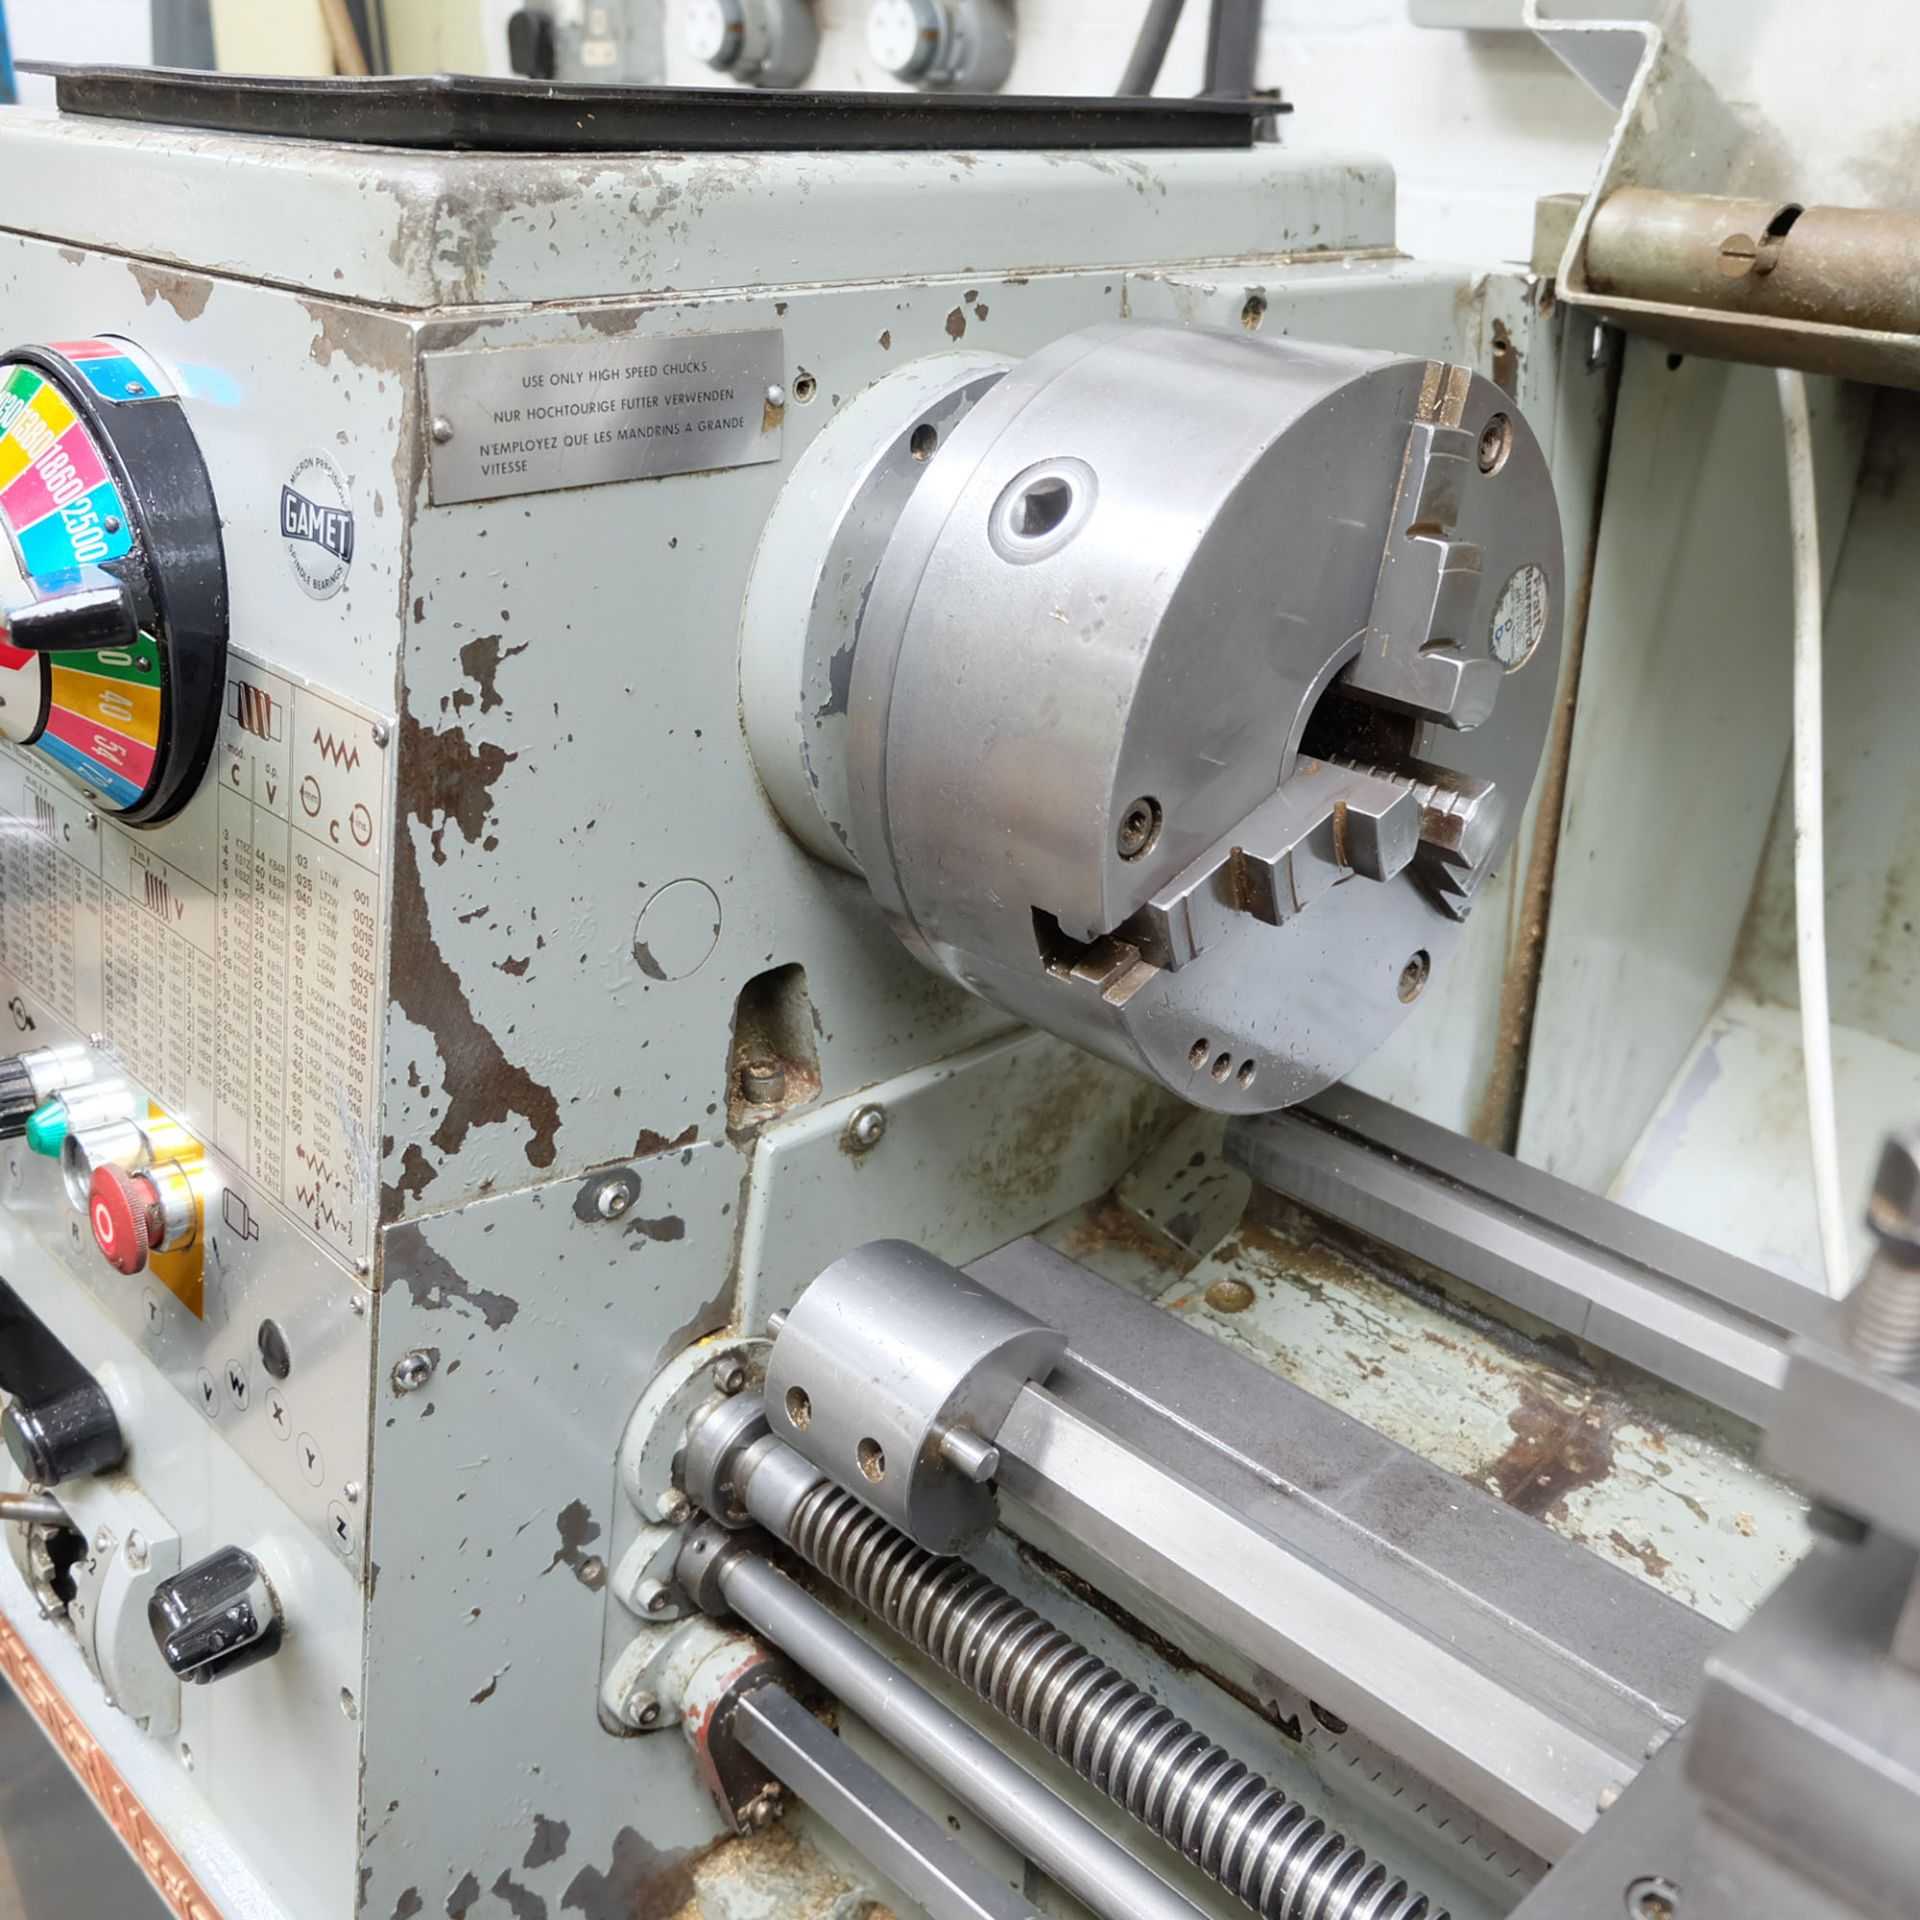 Colchester Master 2500 Gap Bed Centre Lathe. - Image 5 of 10